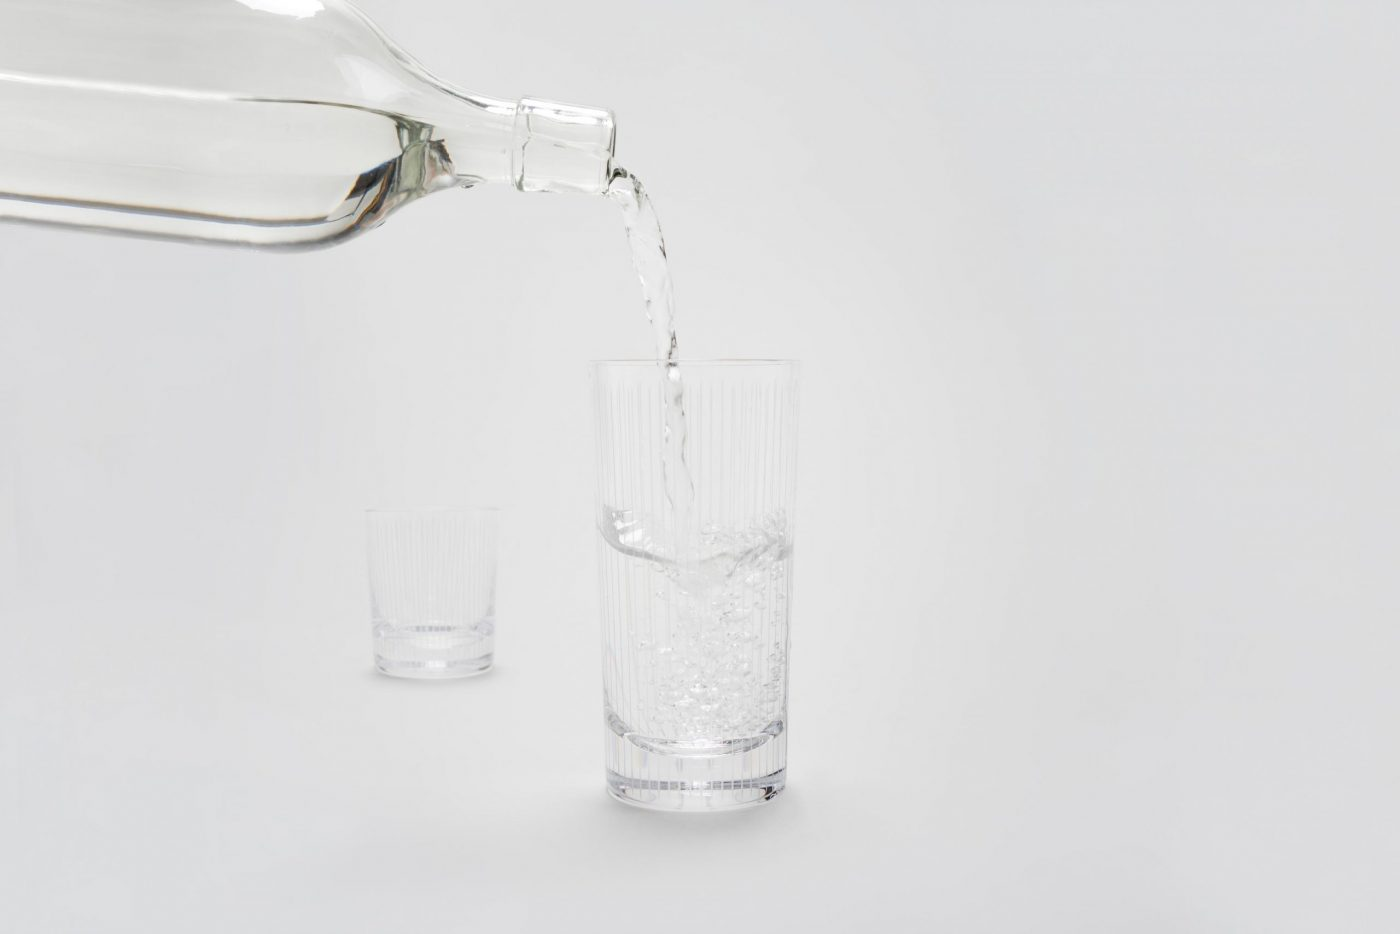 05 MYKILOS RAY GLASS TUMBLER HIGHBALL CRYSTAL scaled